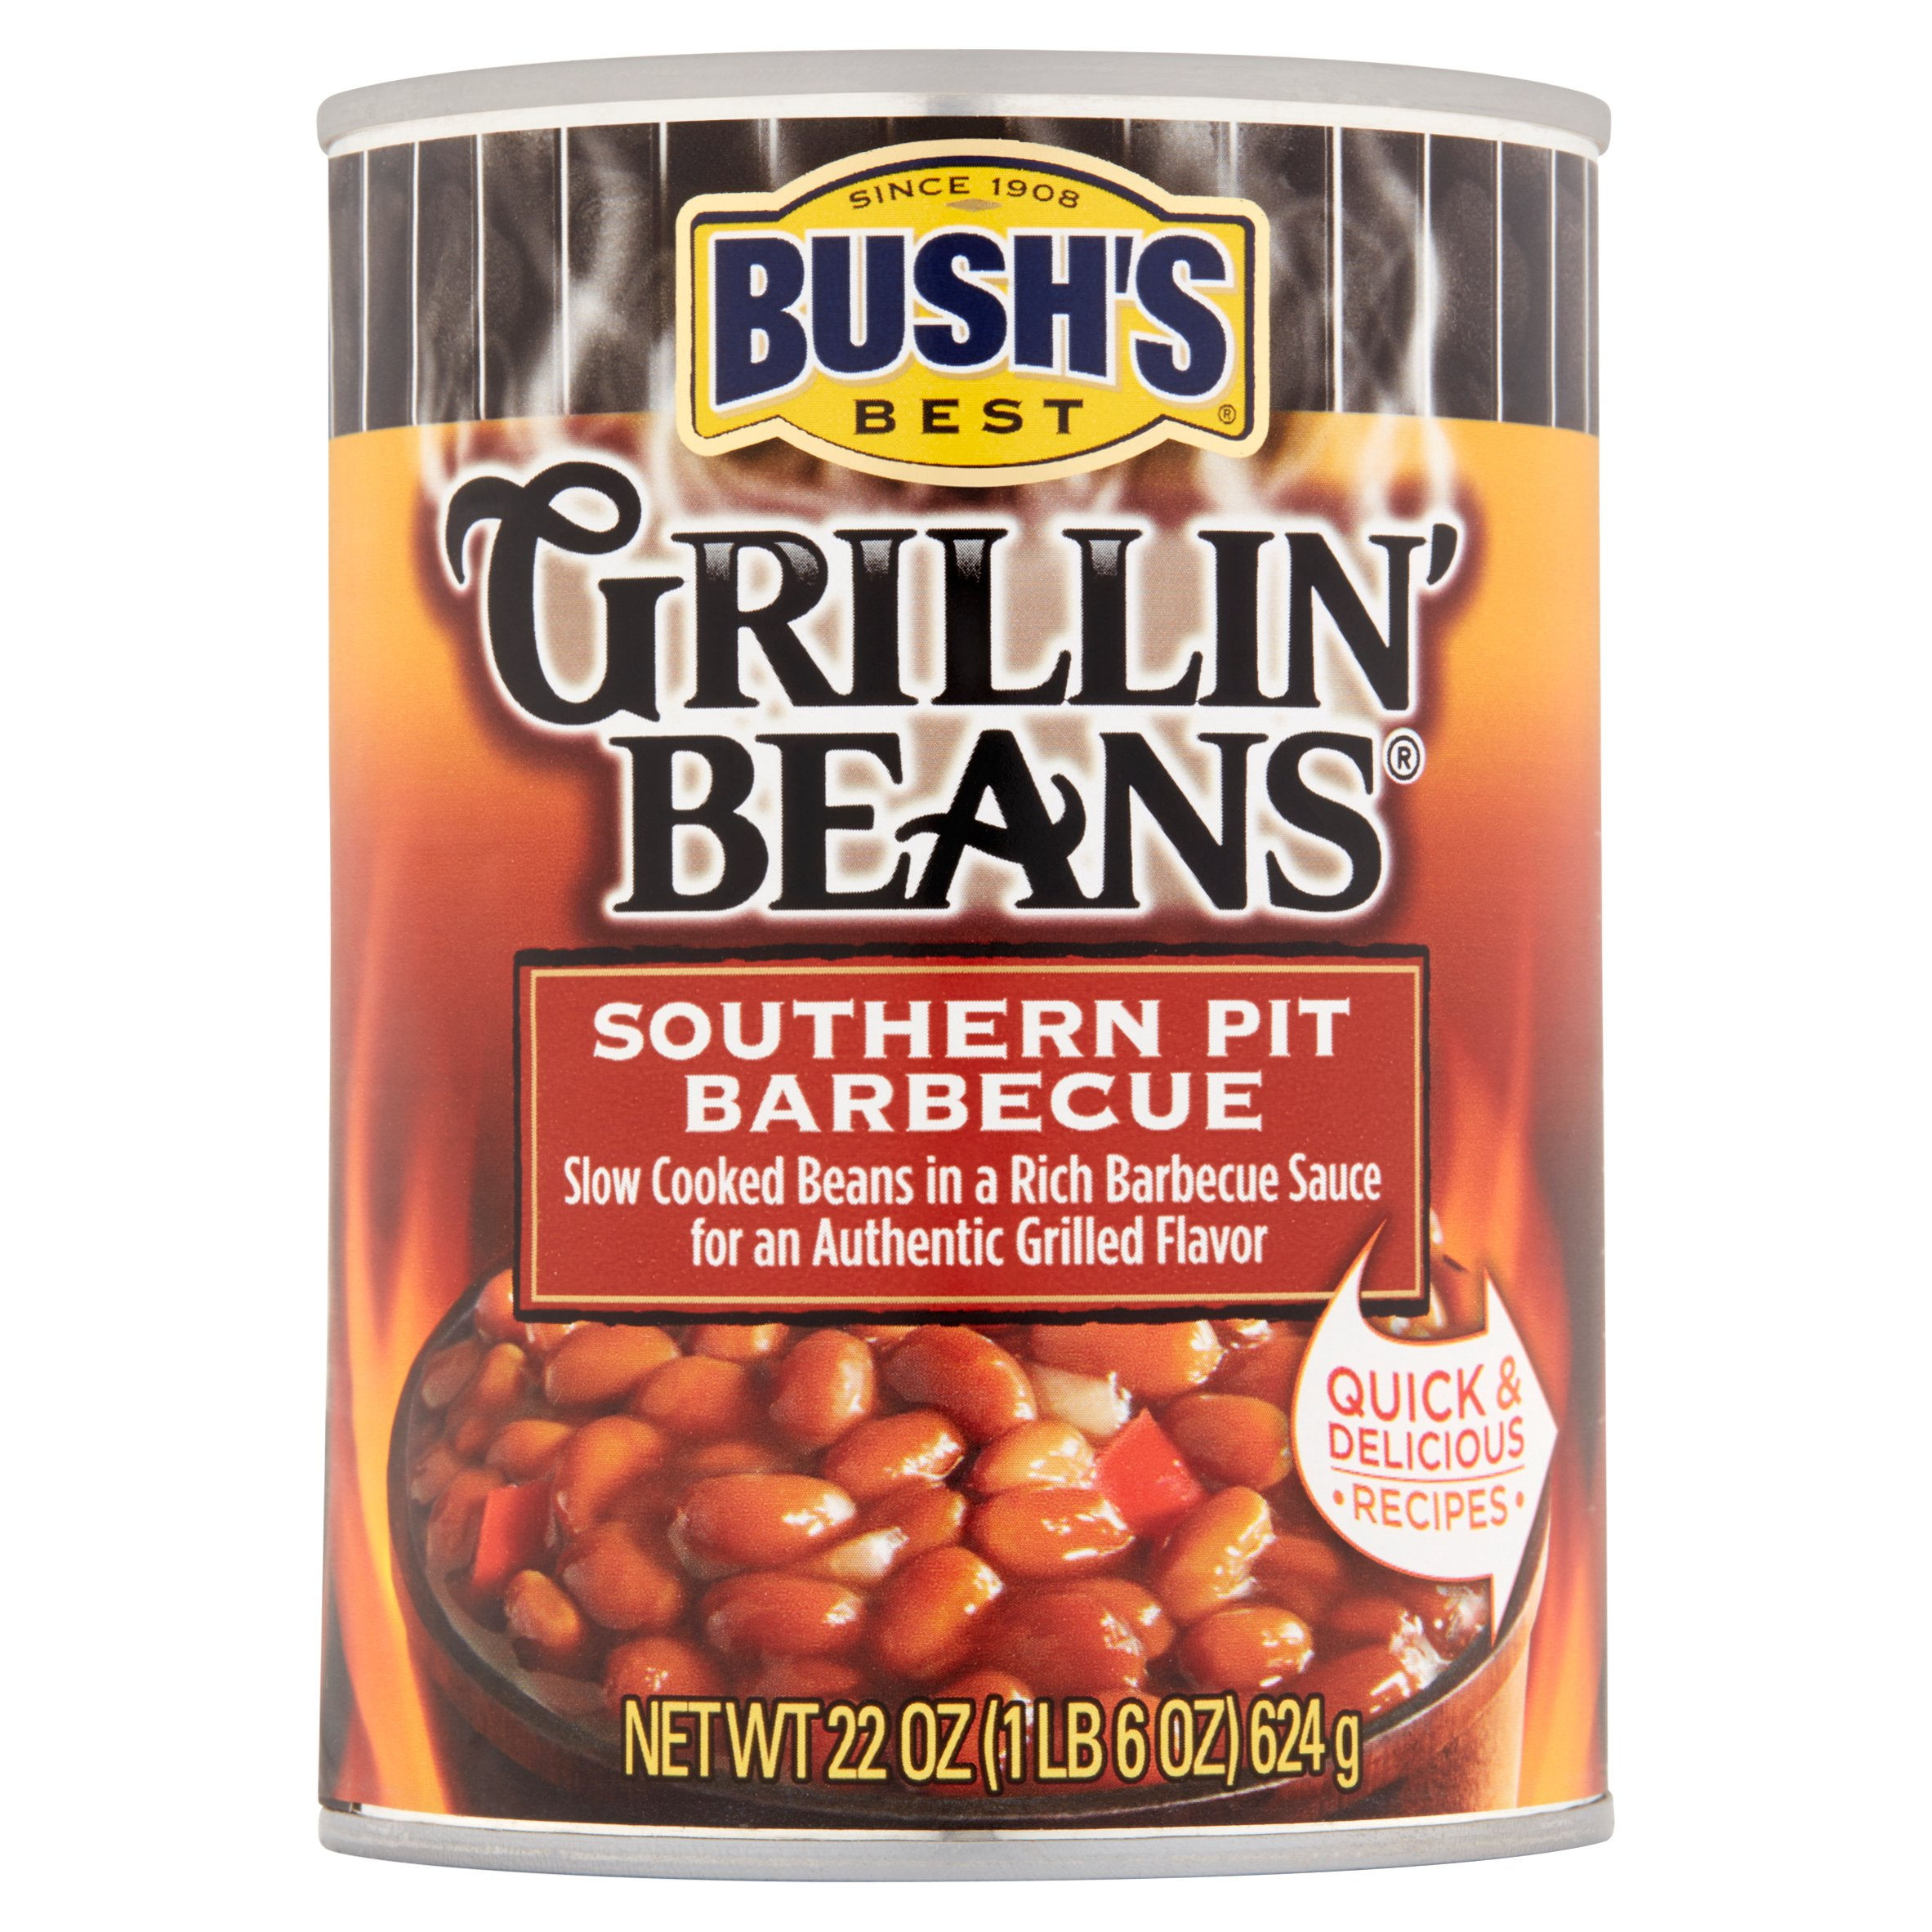 Bushs Best Southern Pit Barbecue Grillin Beans, 22 oz by Bush Brothers & Company